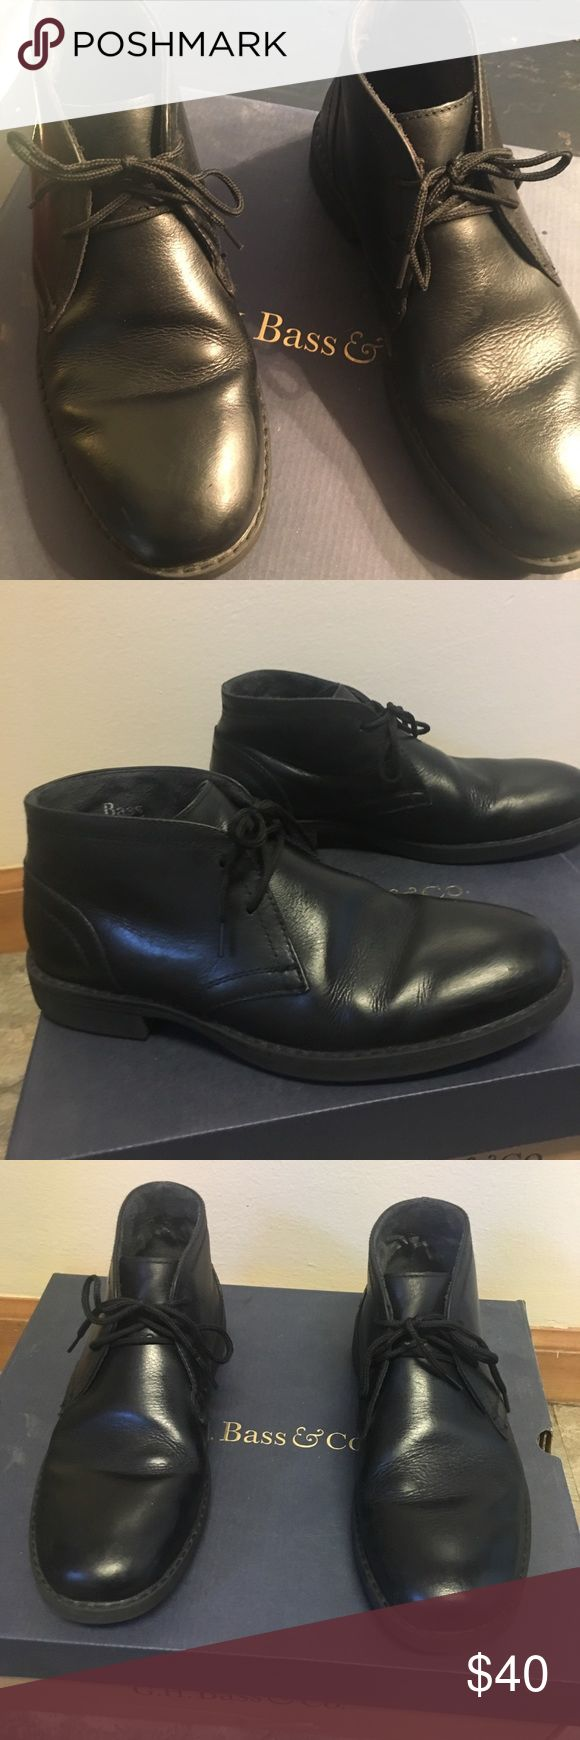 BASS Men's Black Chukka Boot Genuine leather with rubber sole lace up styling boot in black. In excellent condition. From a smoke free home Bass Shoes Chukka Boots